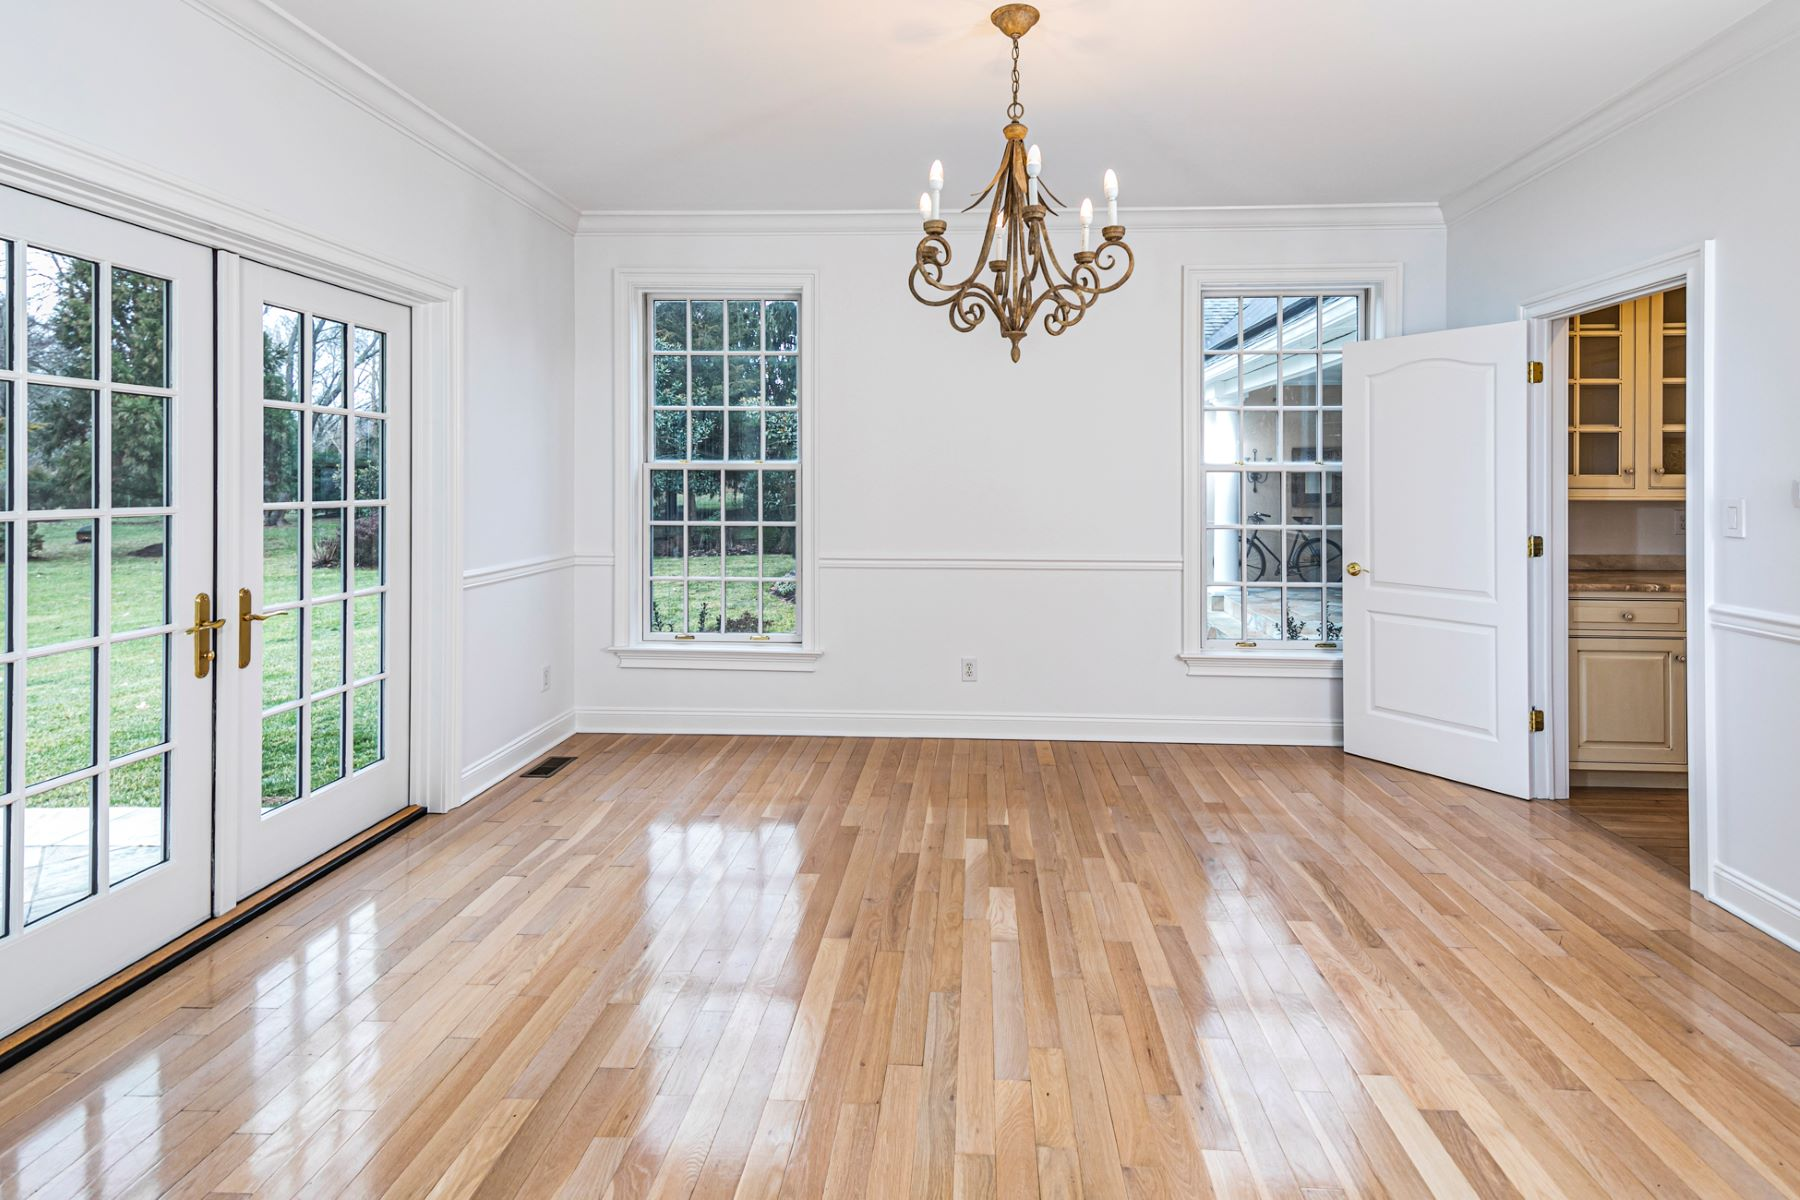 Additional photo for property listing at You'll Relish This Home For So Many Reasons 20 Meadow Lane Pennington, New Jersey 08534 United States